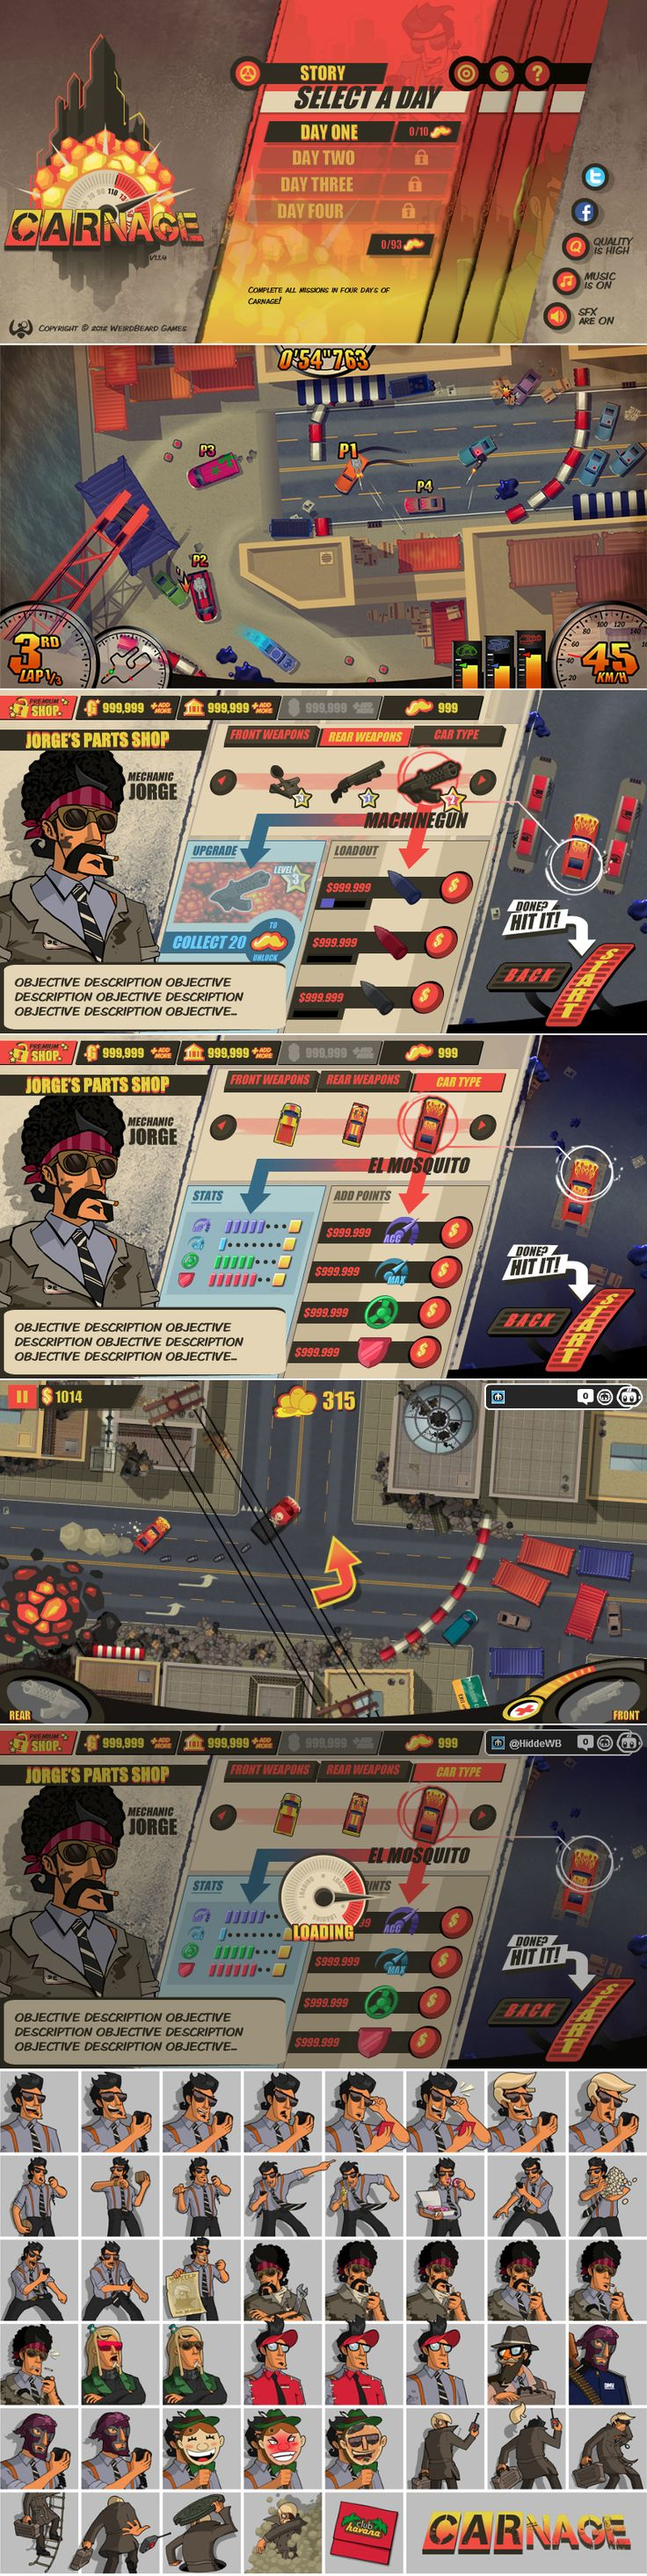 Carnage is a single player racing game you can play online, for free!  http://www.grinwise.com/portfolios/carnage/